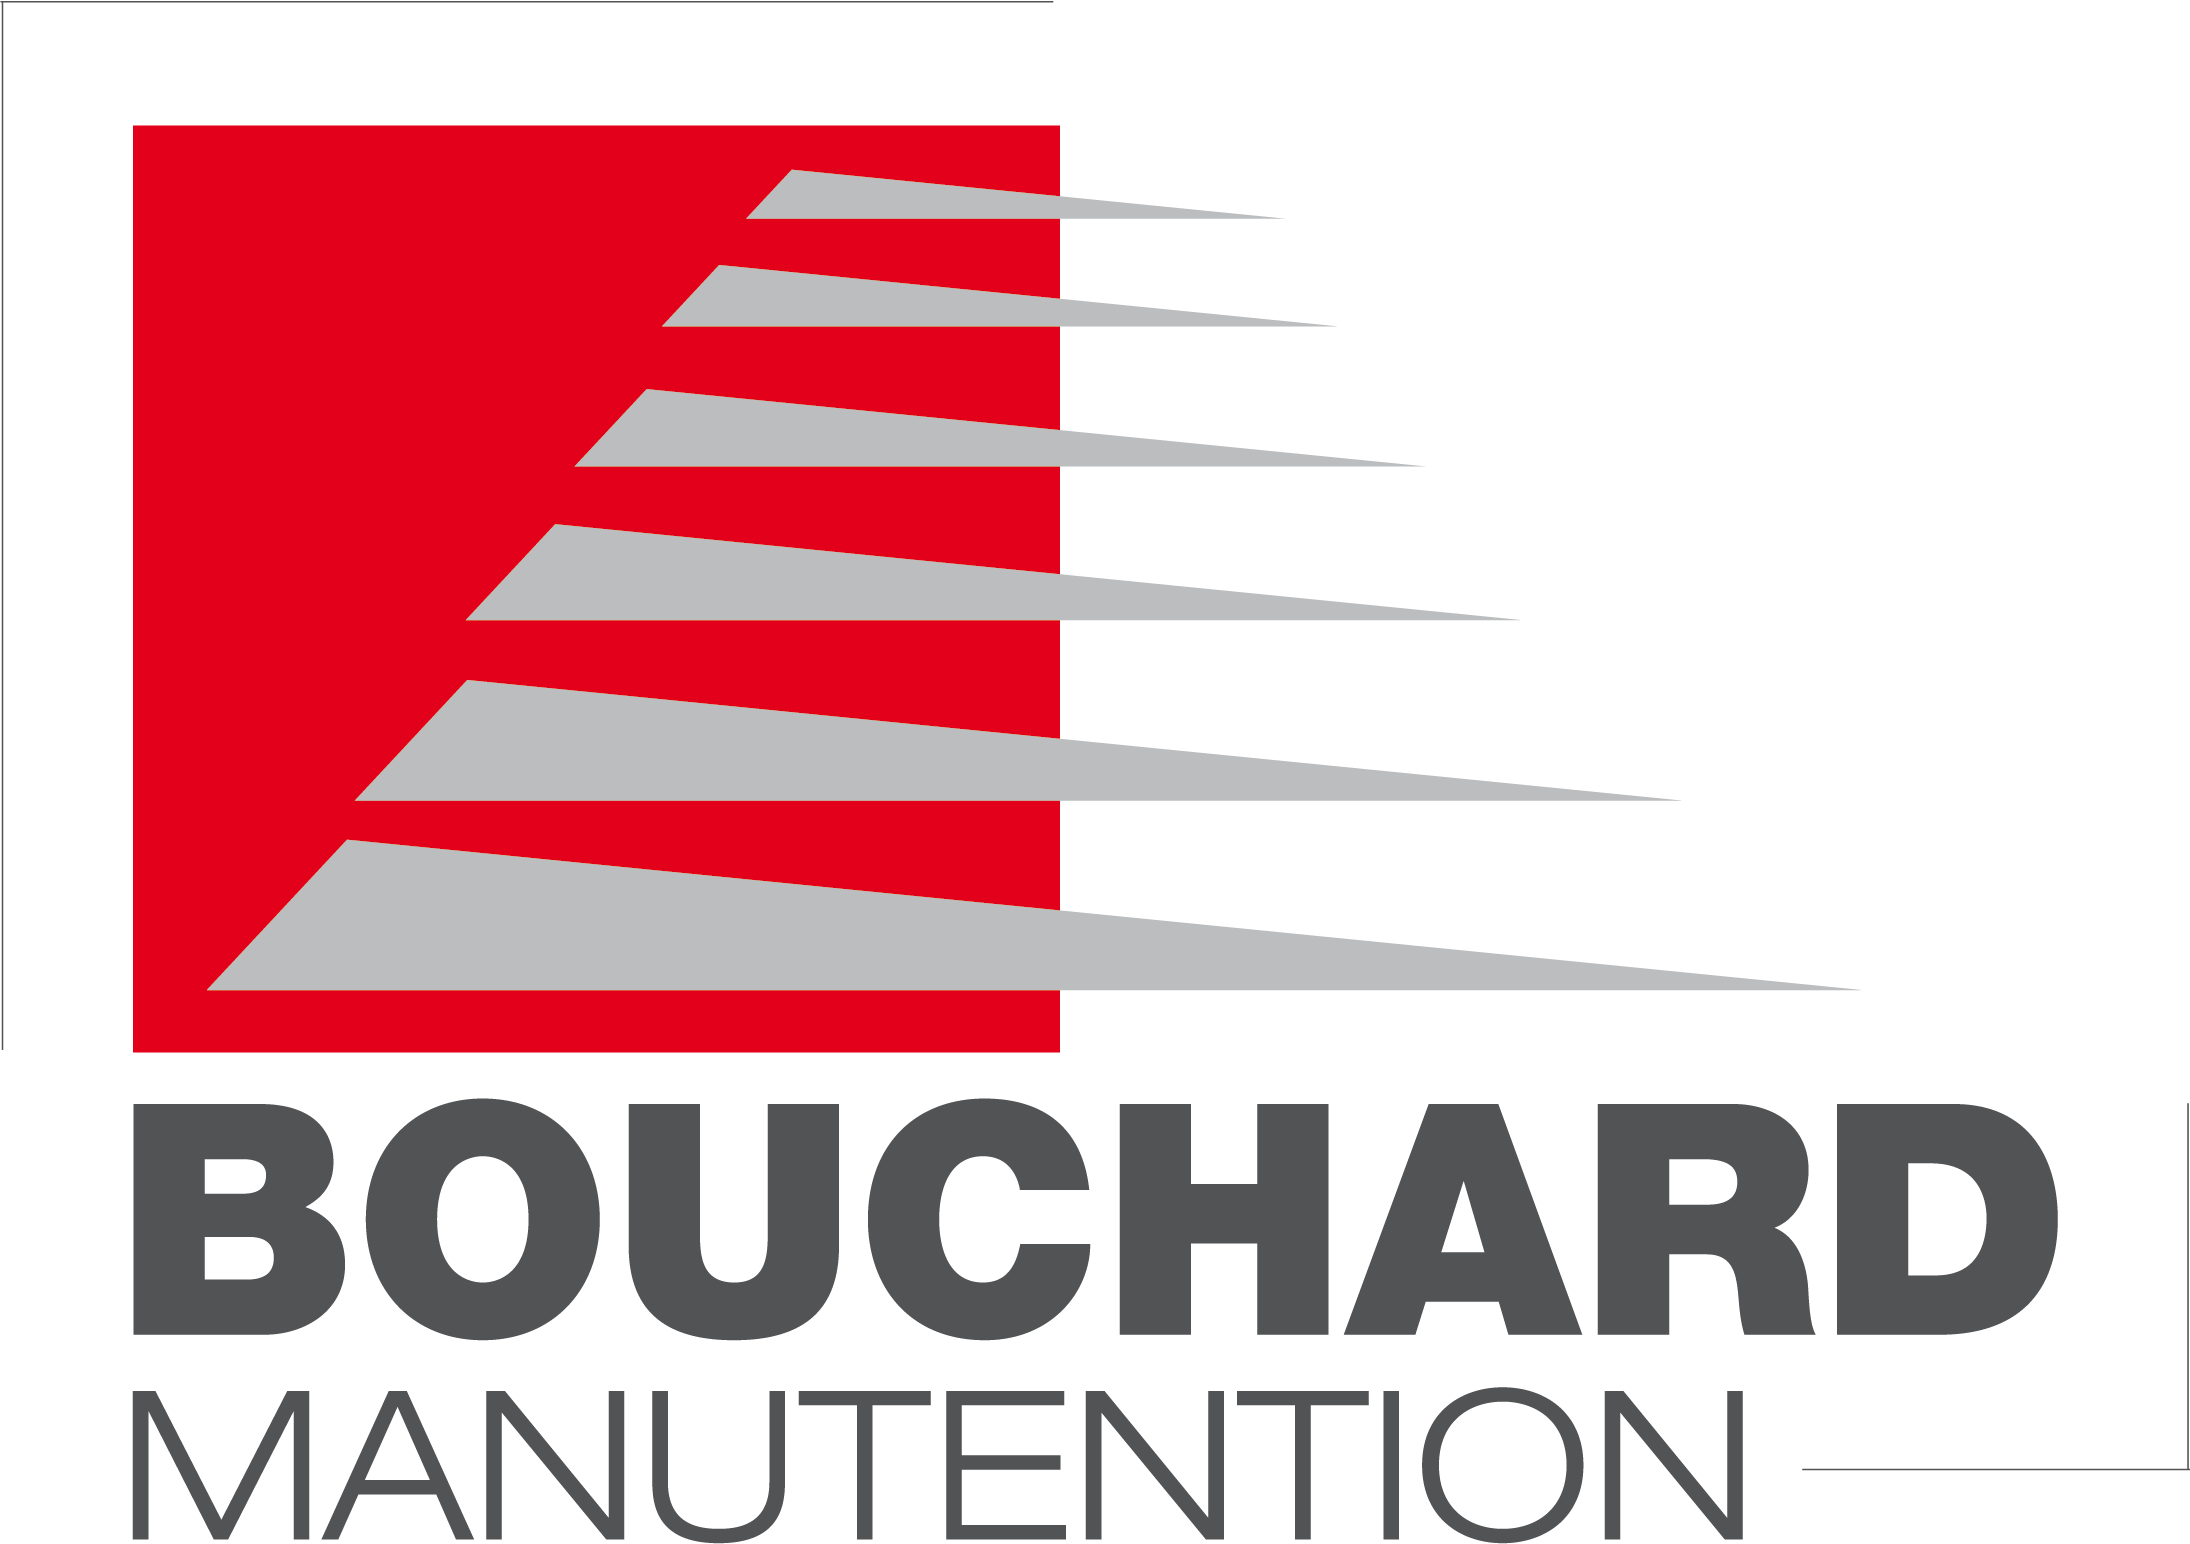 Bouchard Manutention